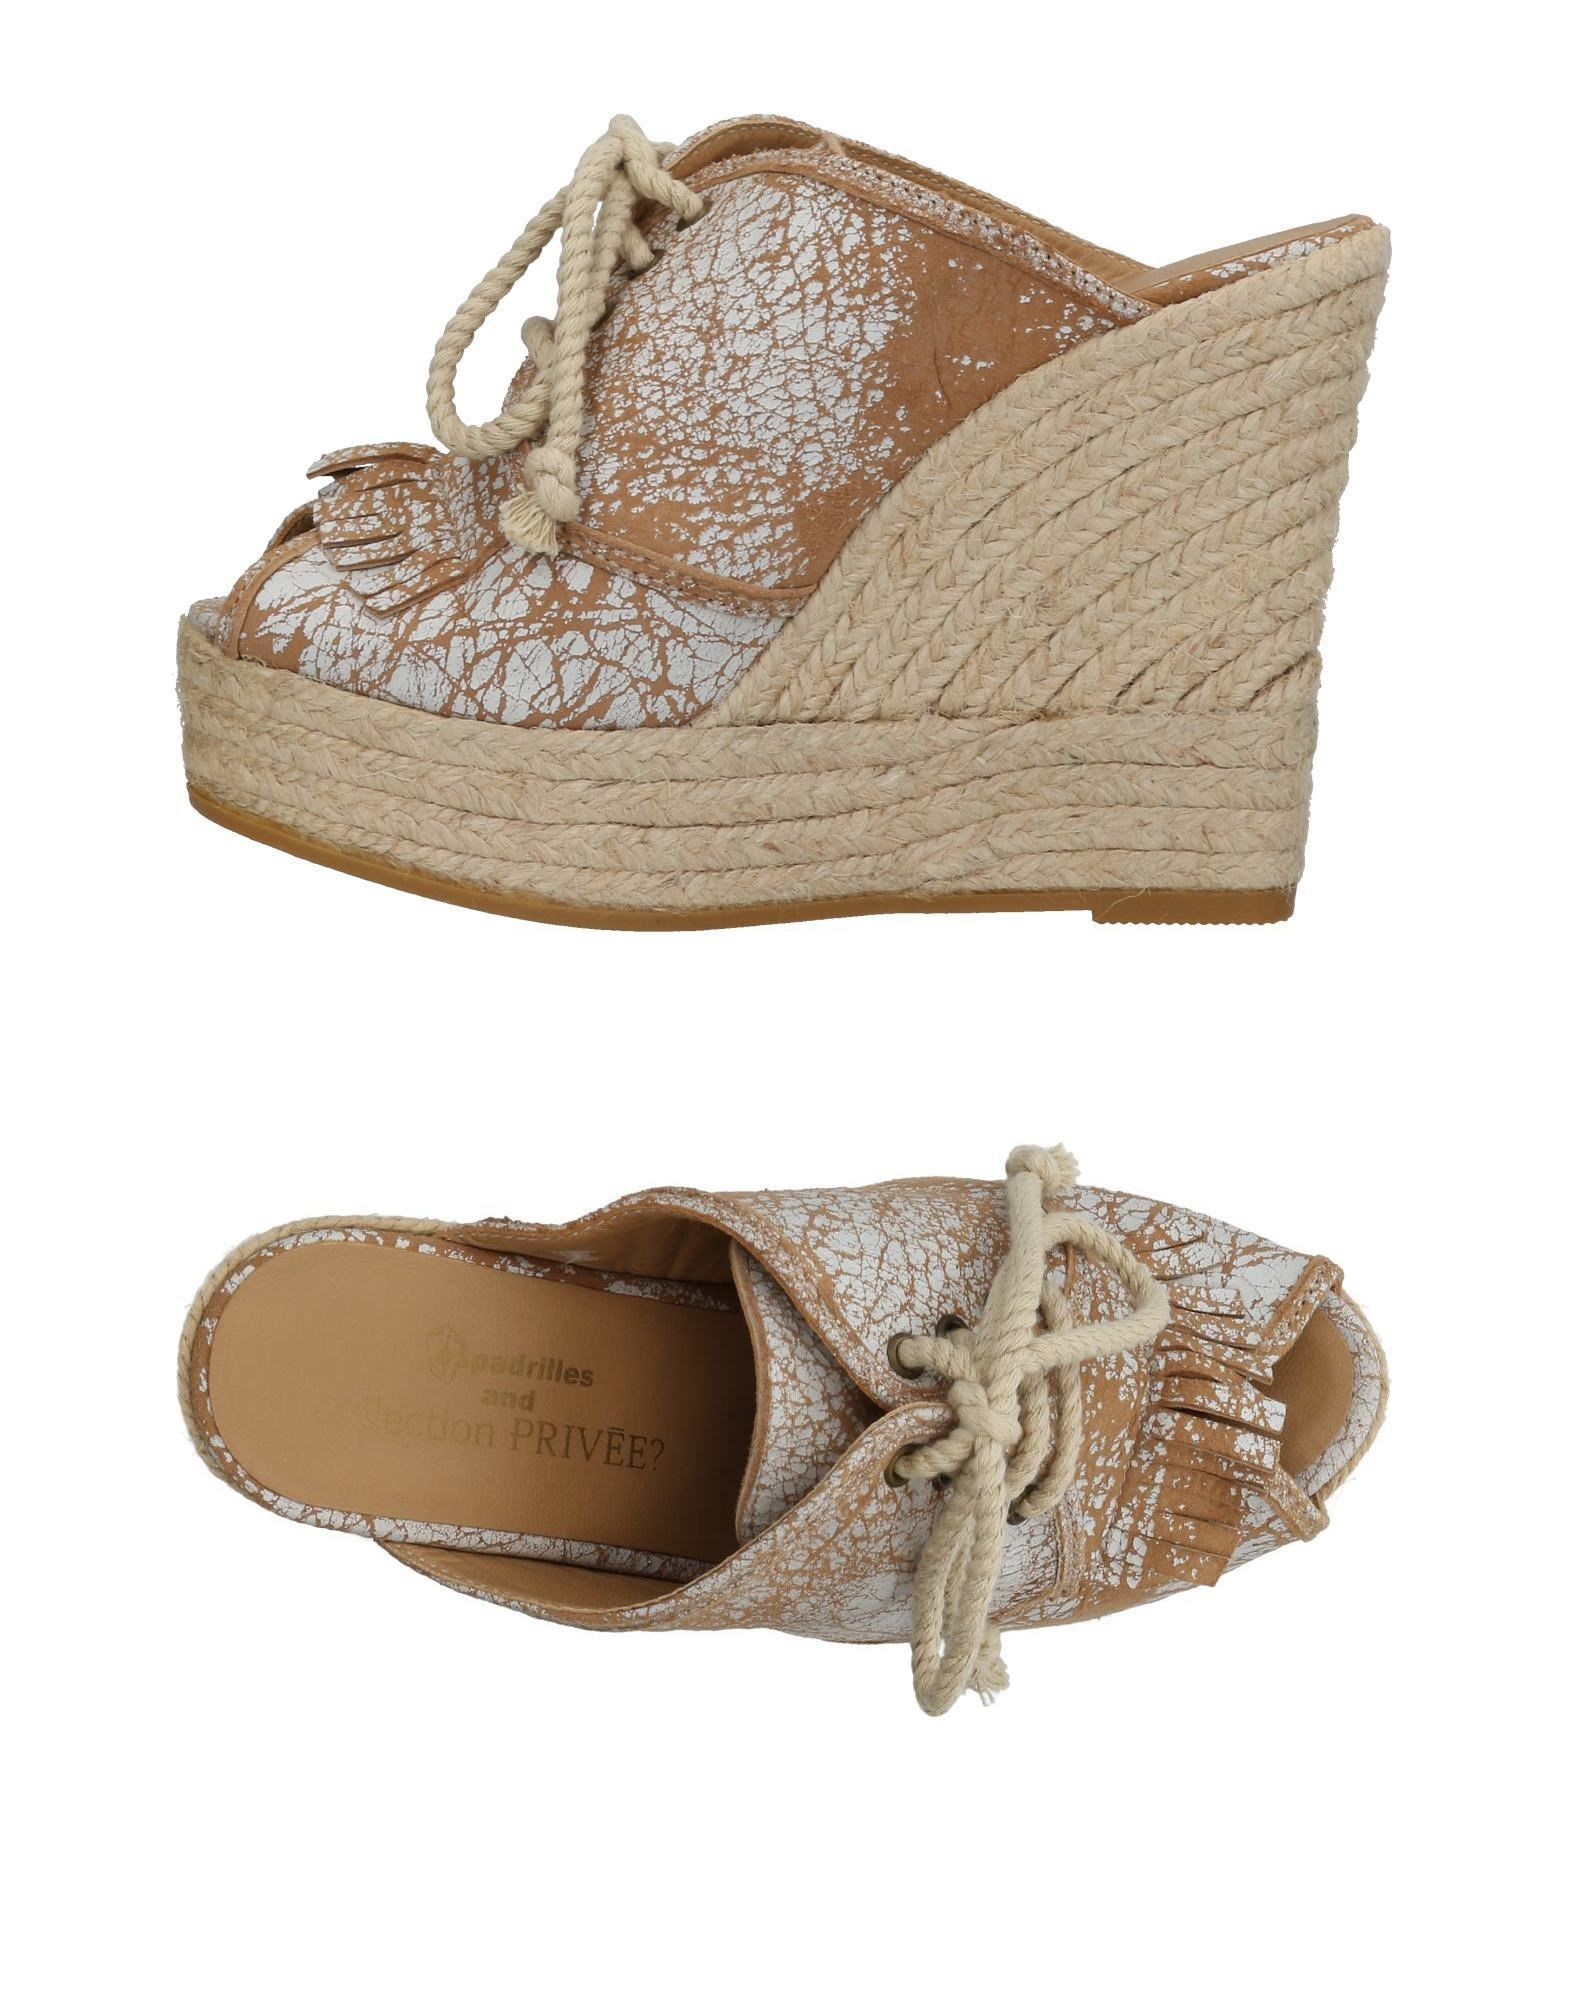 Sandali Espadrilles And Collection Privēe? Donna - Acquista online su